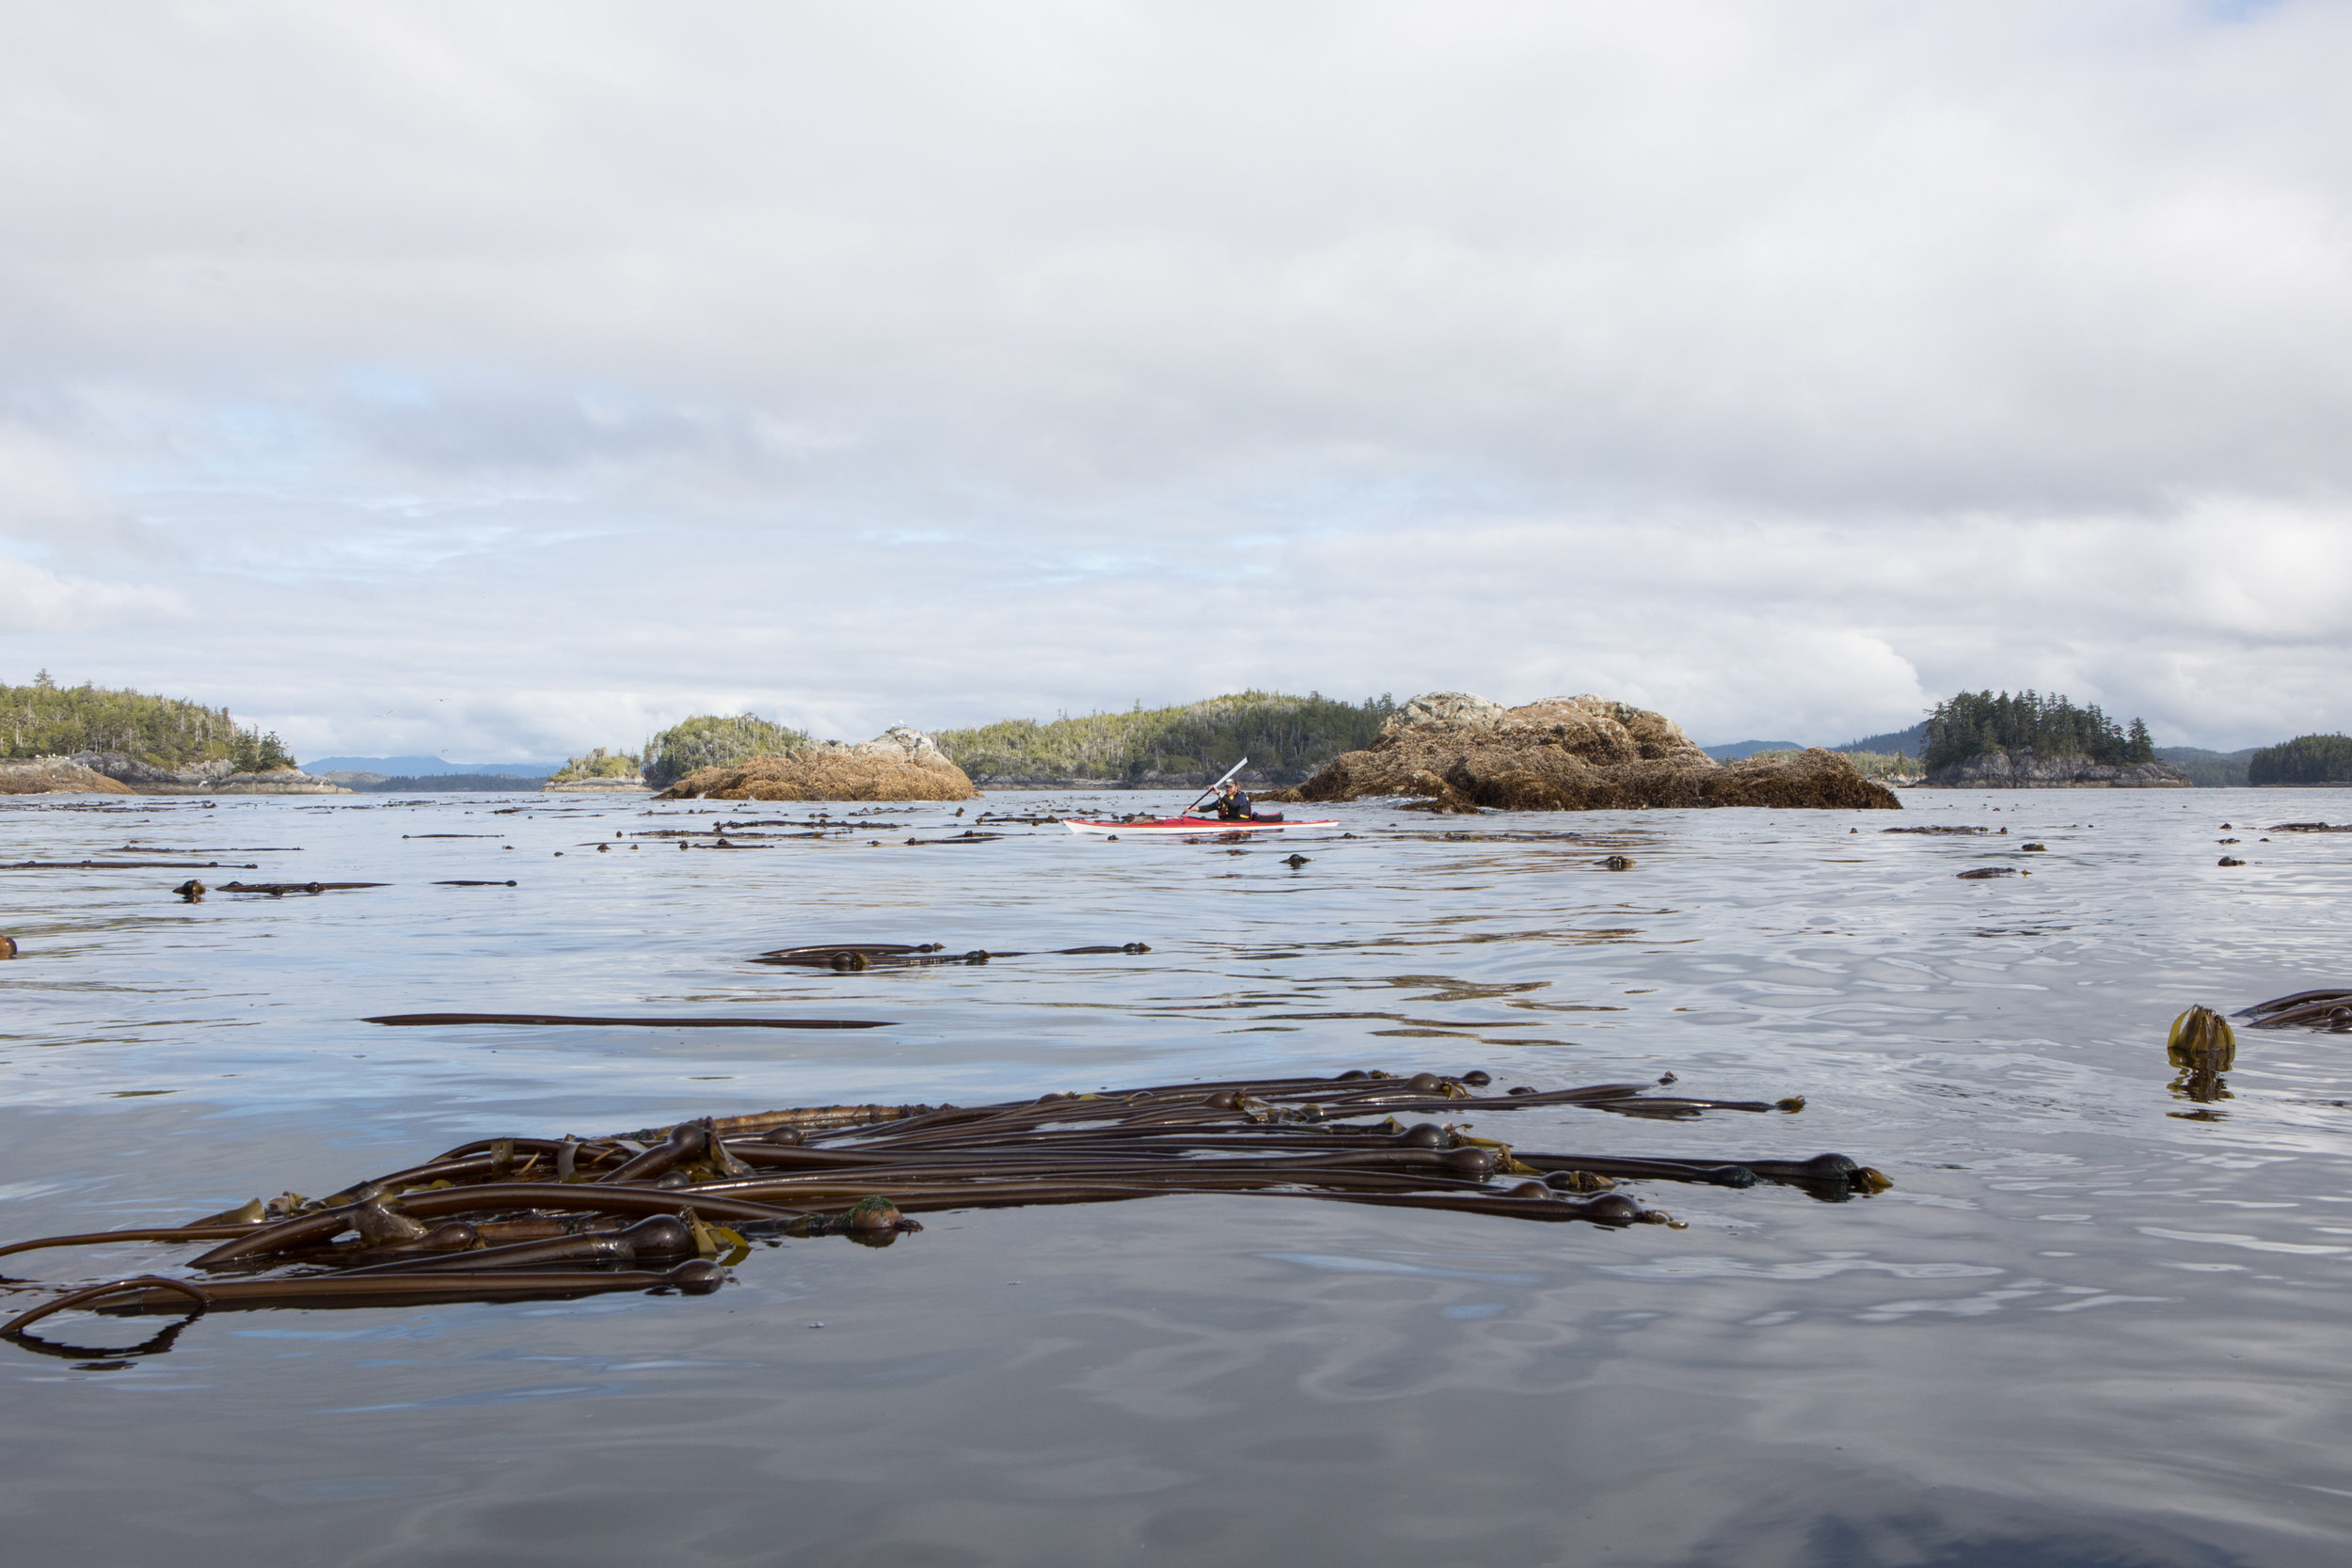 Aaron paddles through a Bull Kelp bed.